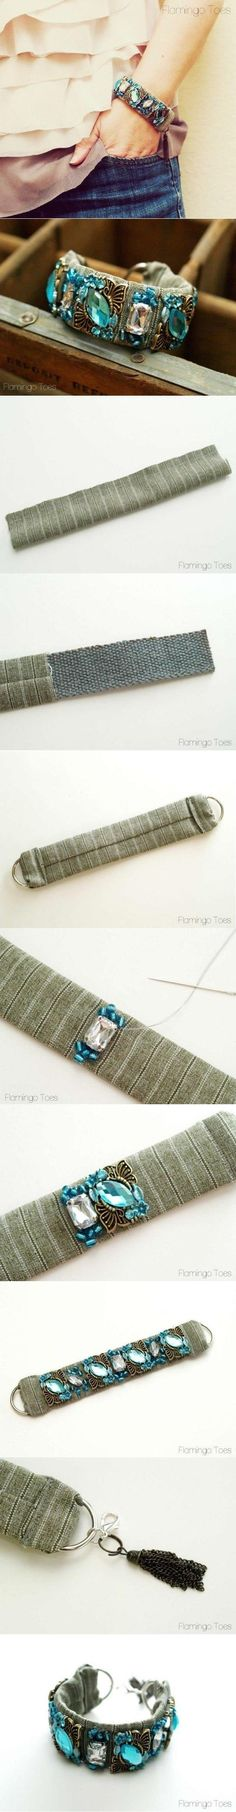 DIY Beautiful Handmade Wristband w/fabric base. #Beading #Jewelry #Tutorials